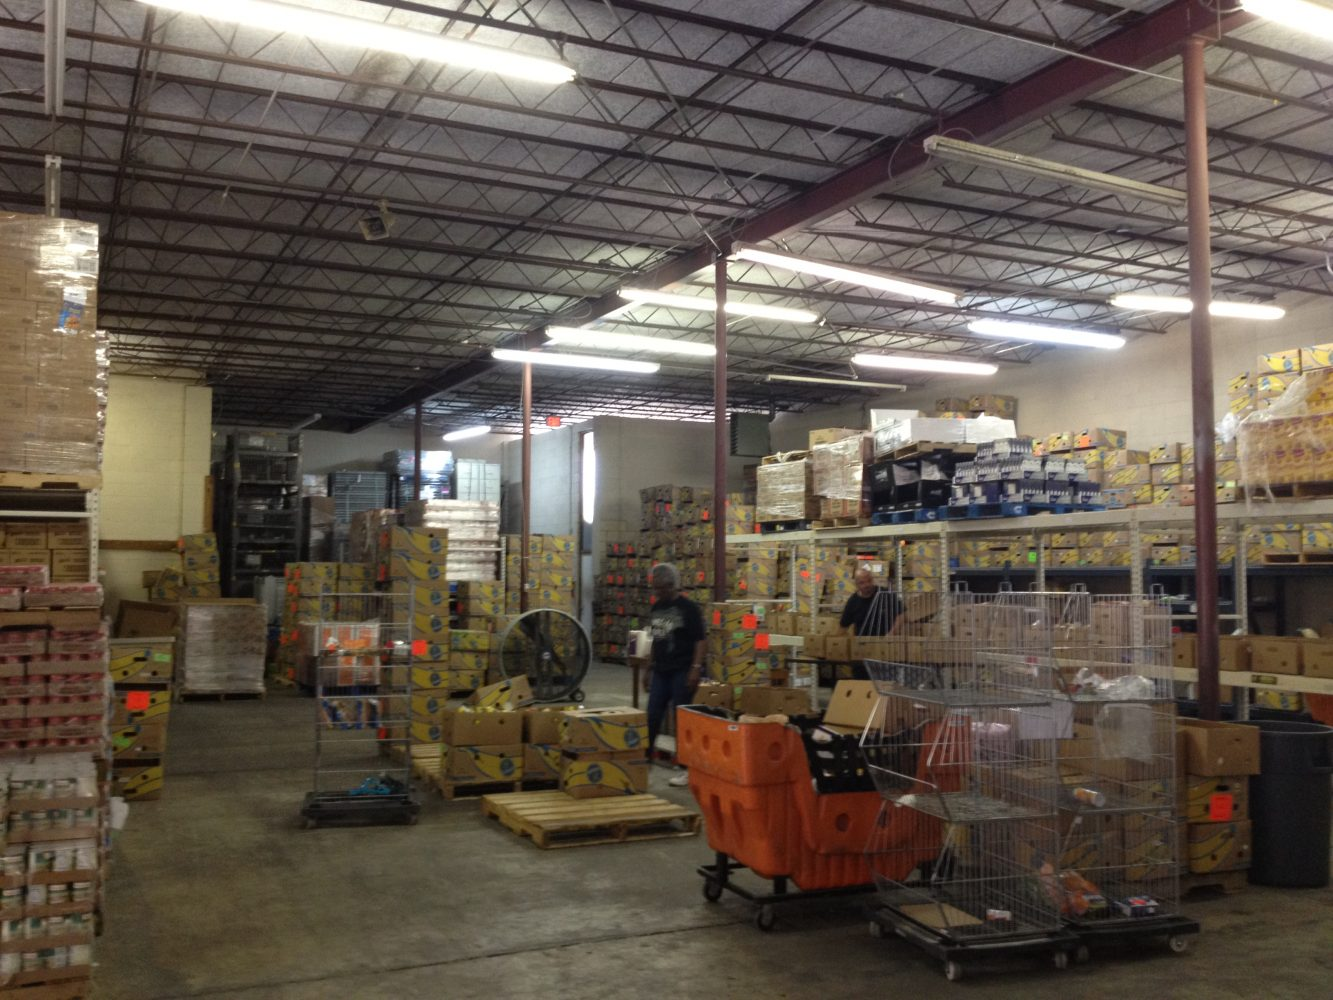 The warehouse holds a number of pallets where donations are temporarily kept